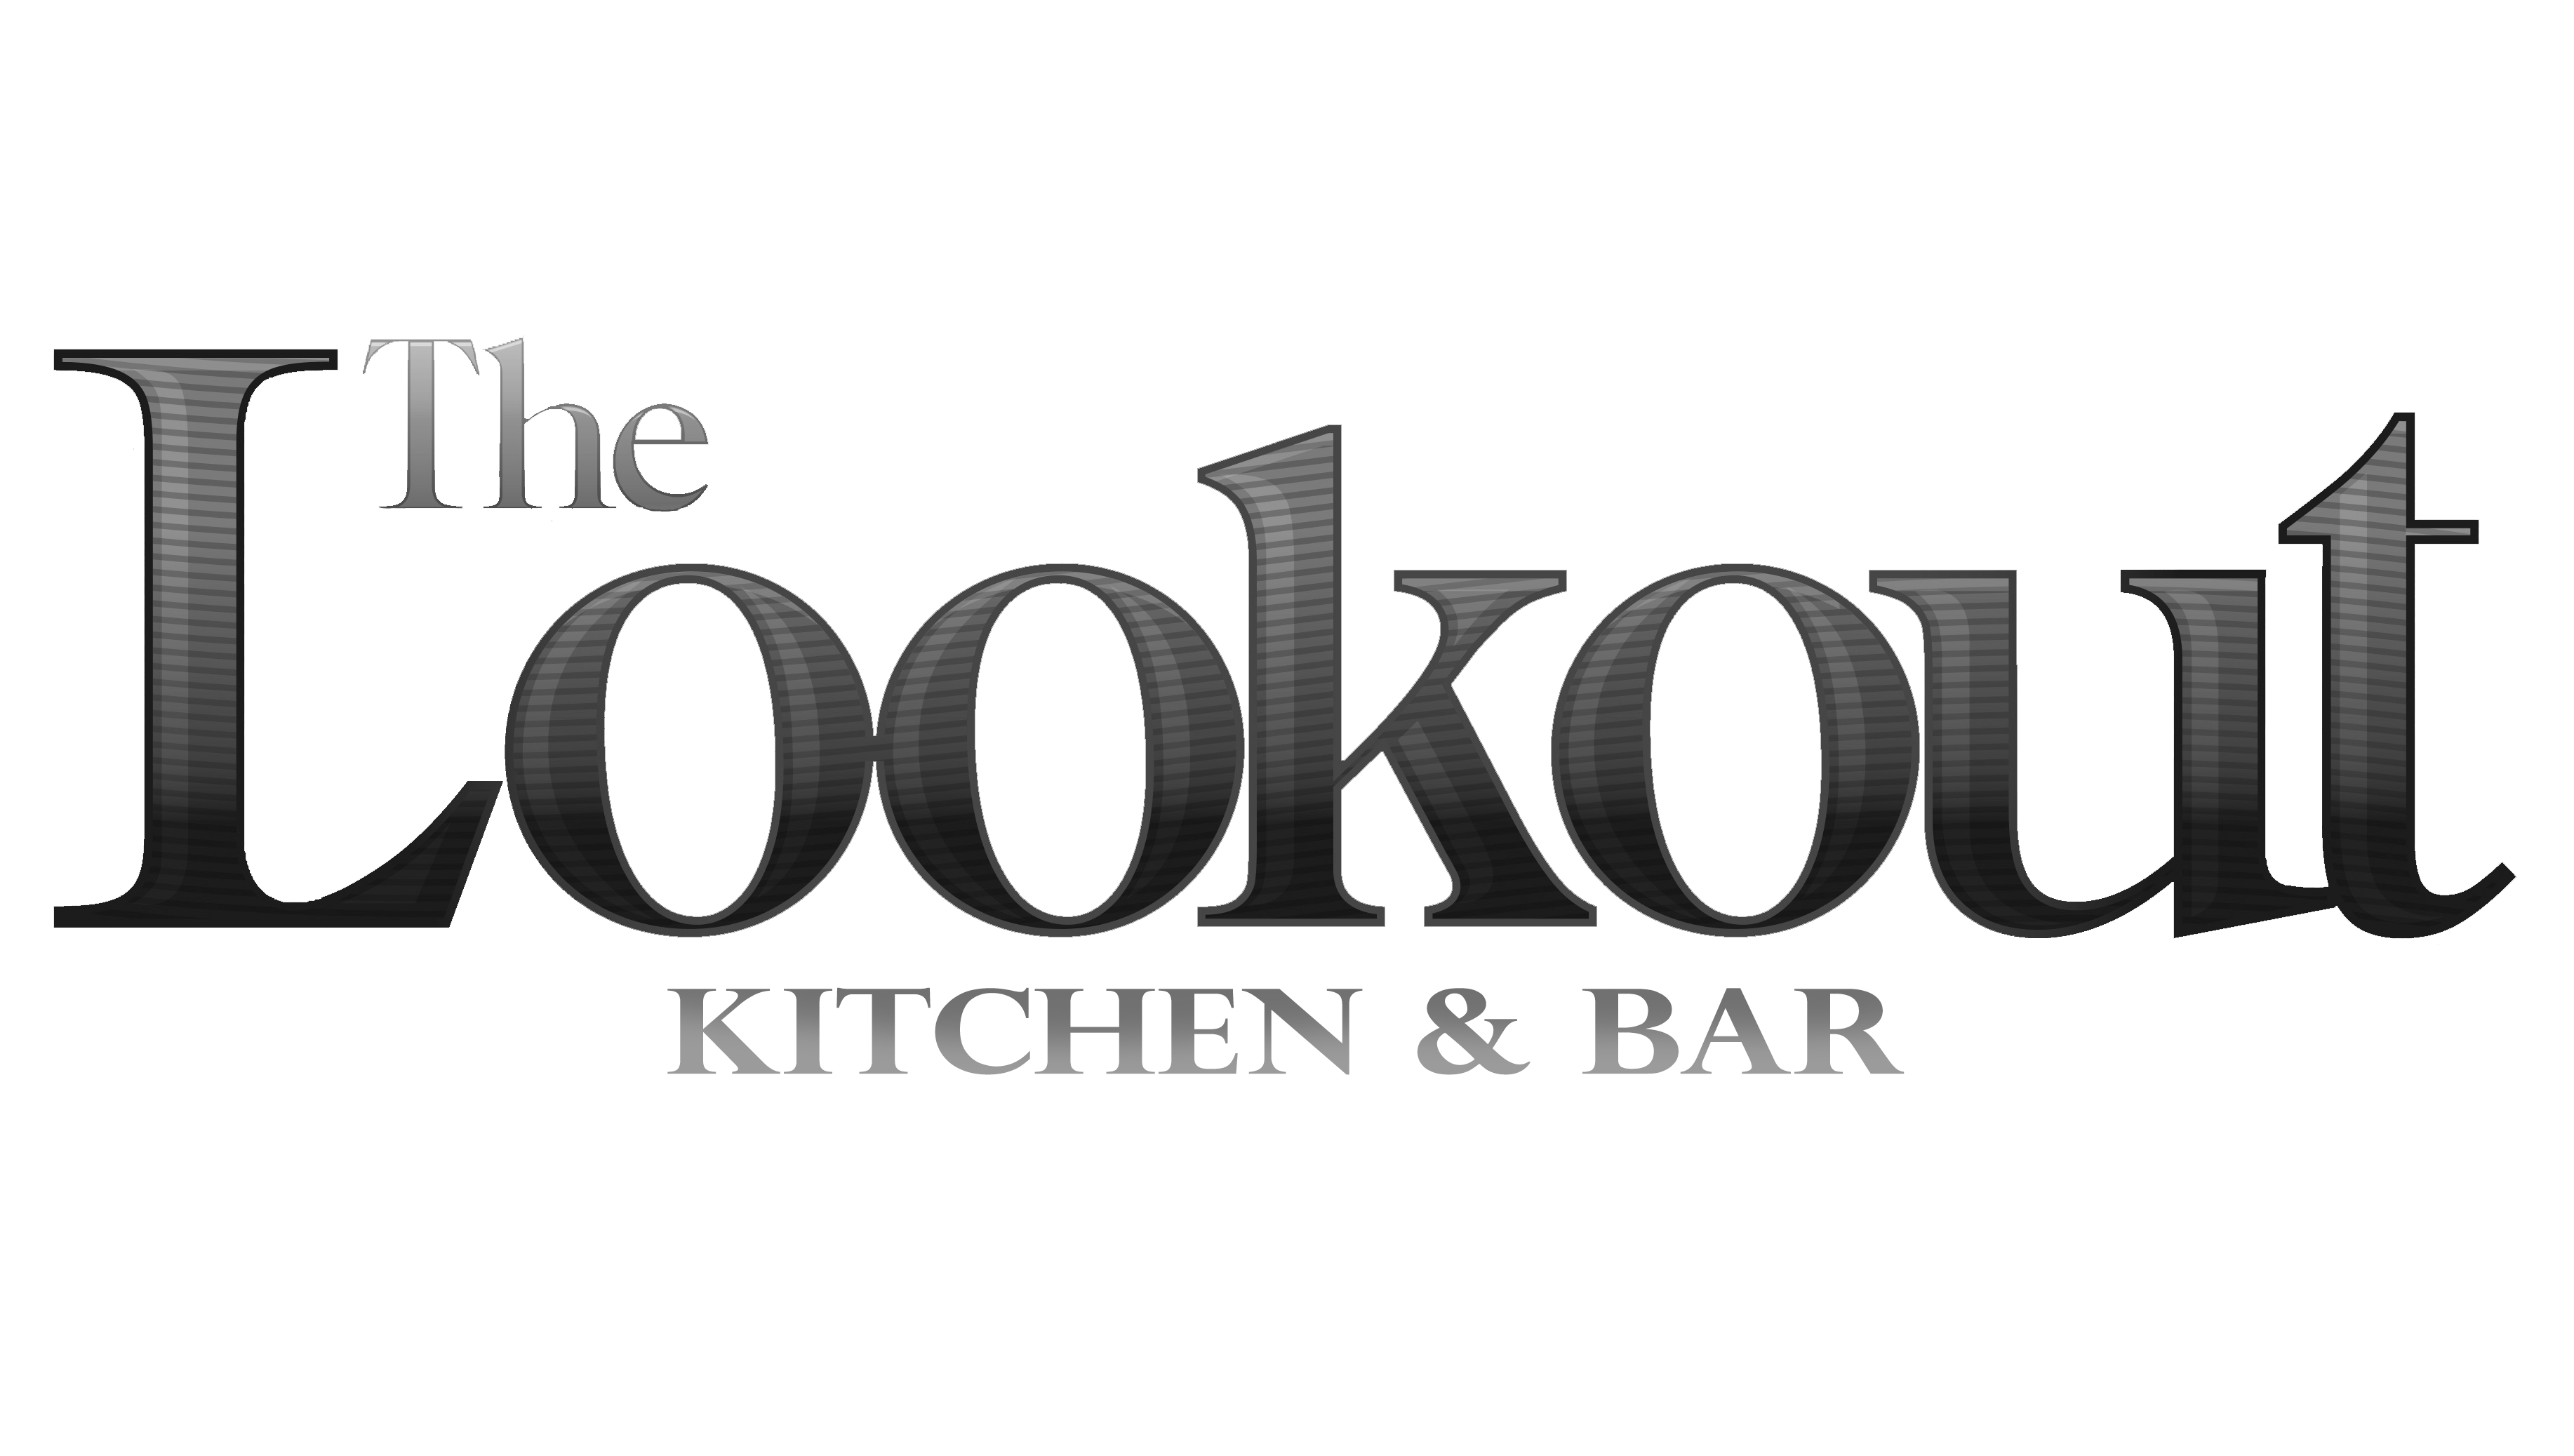 The Lookout Black